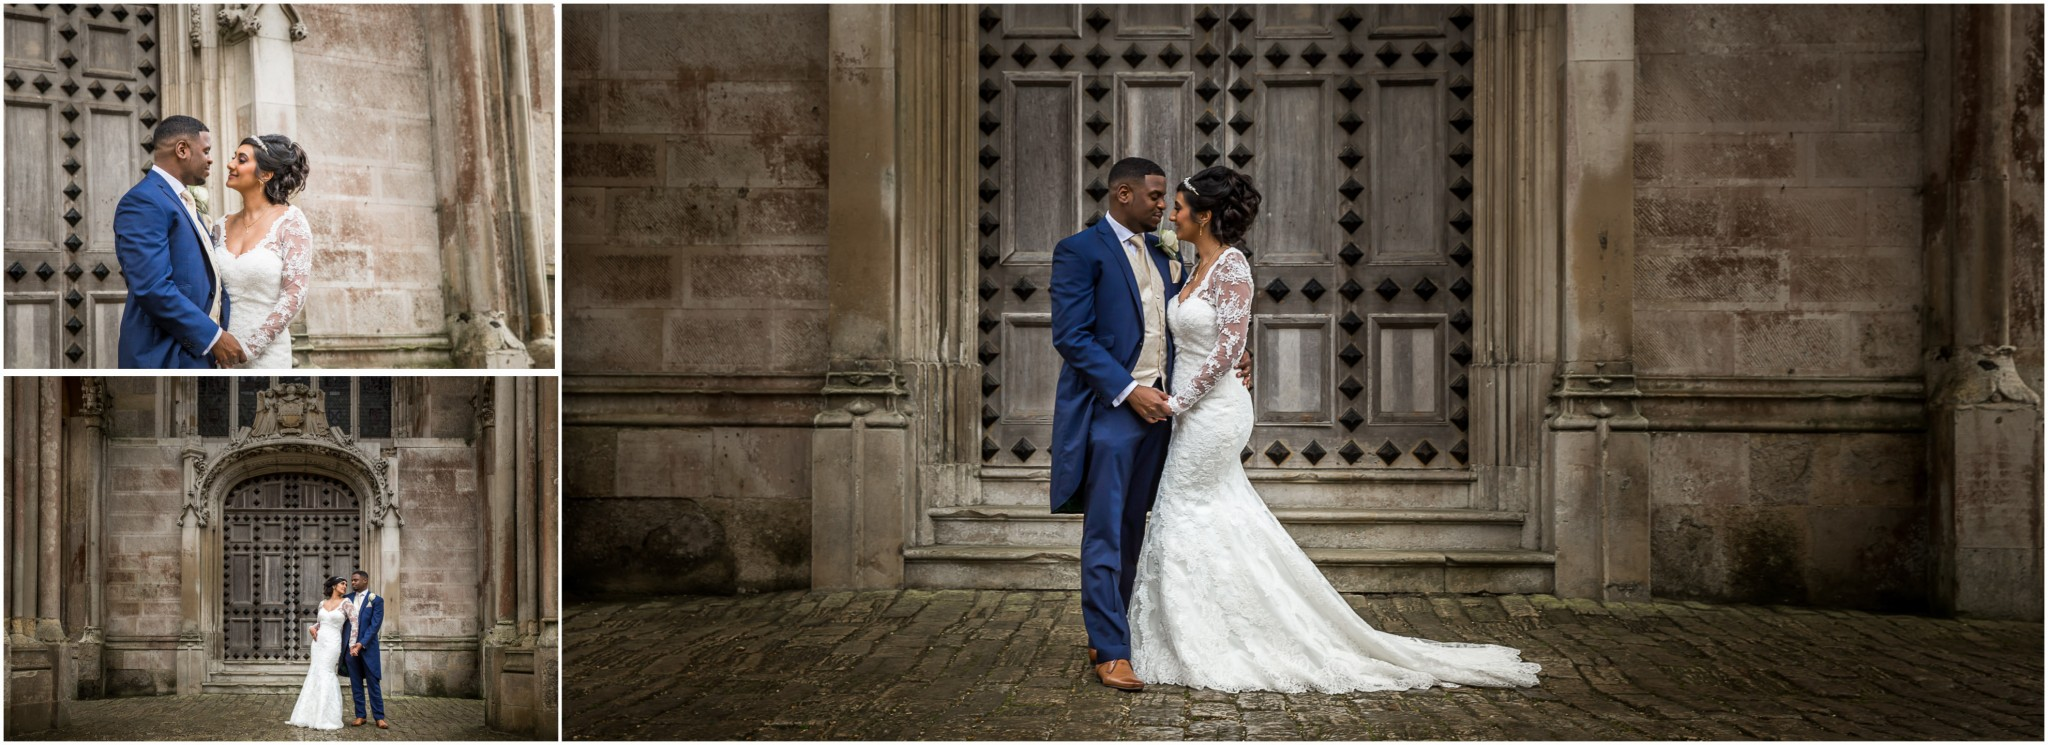 Highcliffe Castle Wedding Bride & Groom portraits